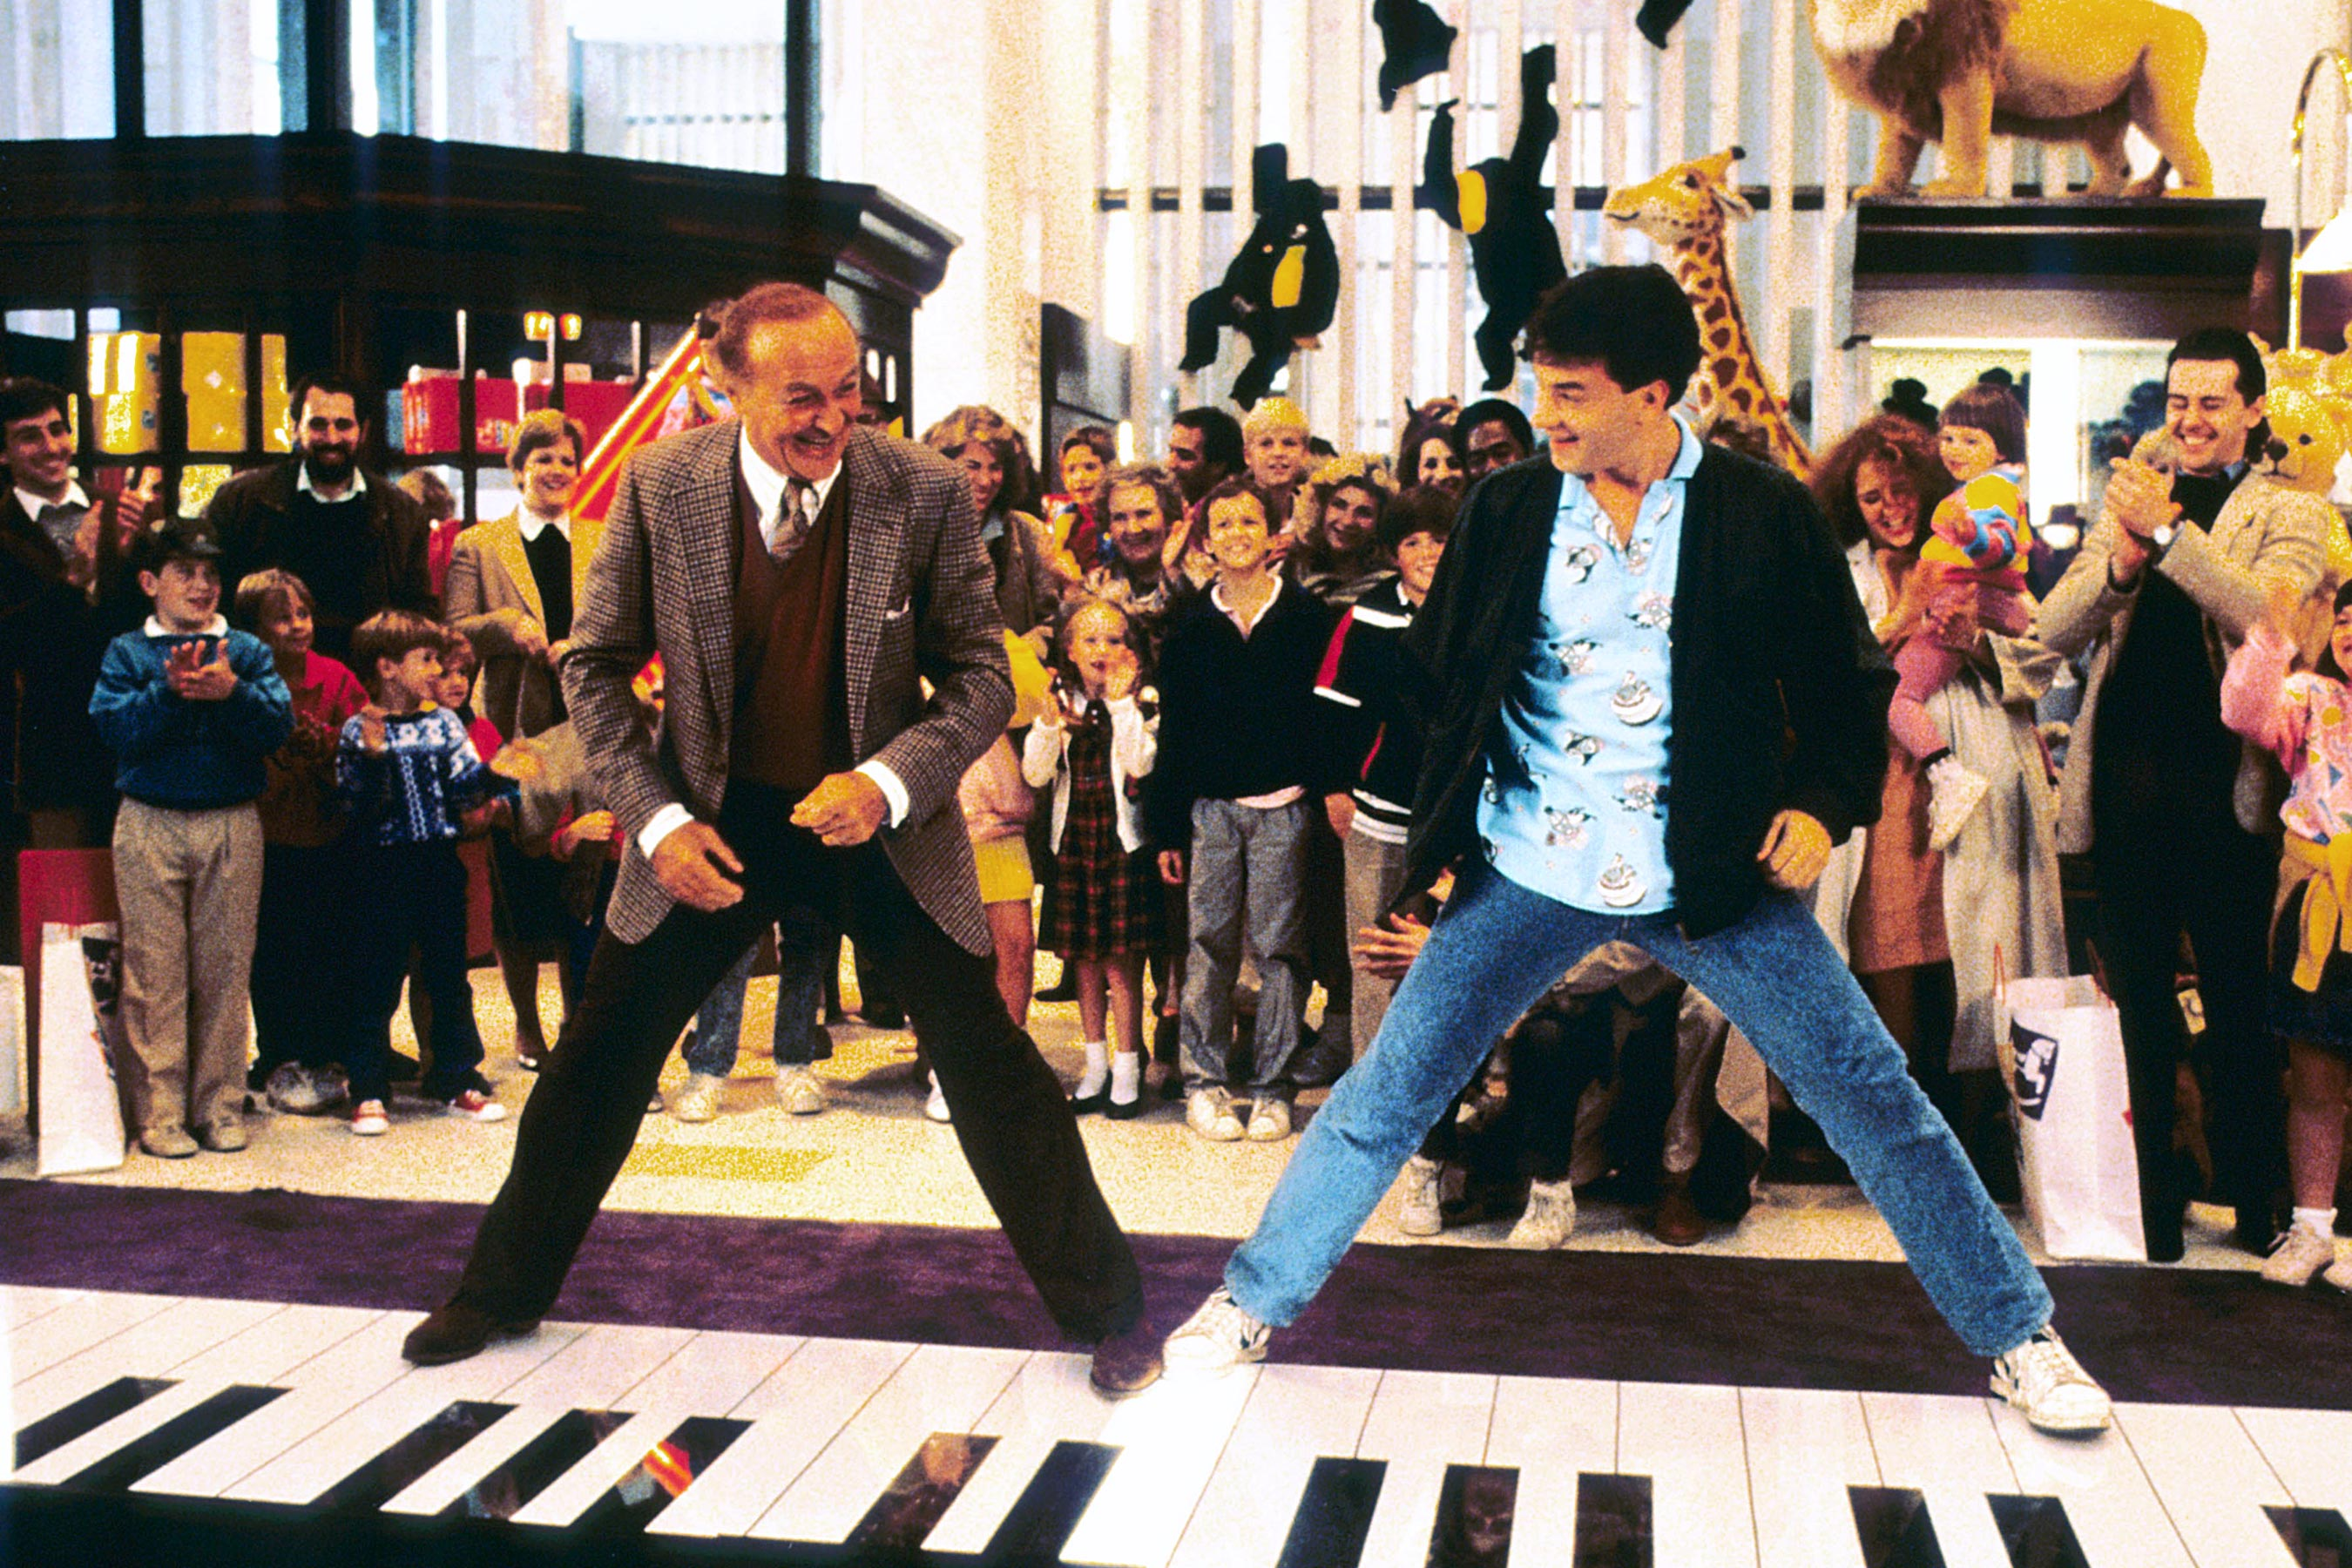 Tom Hanks' Big is returning to theaters for its 30th anniversary